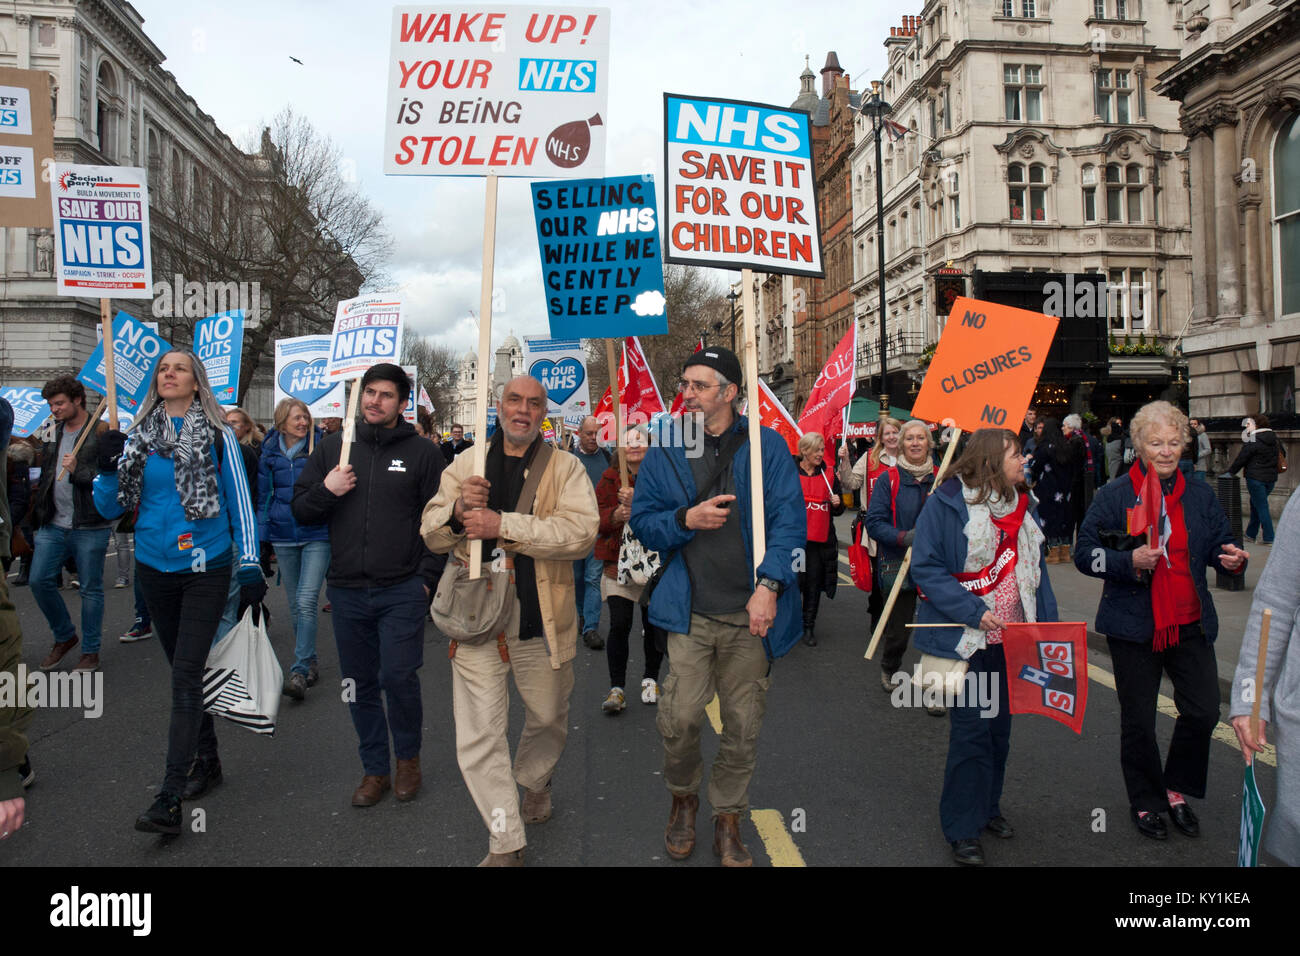 lively demonstration and protest in support of NHS, placards 'Wake up your NHS being stolen' 'NHS save - Stock Image